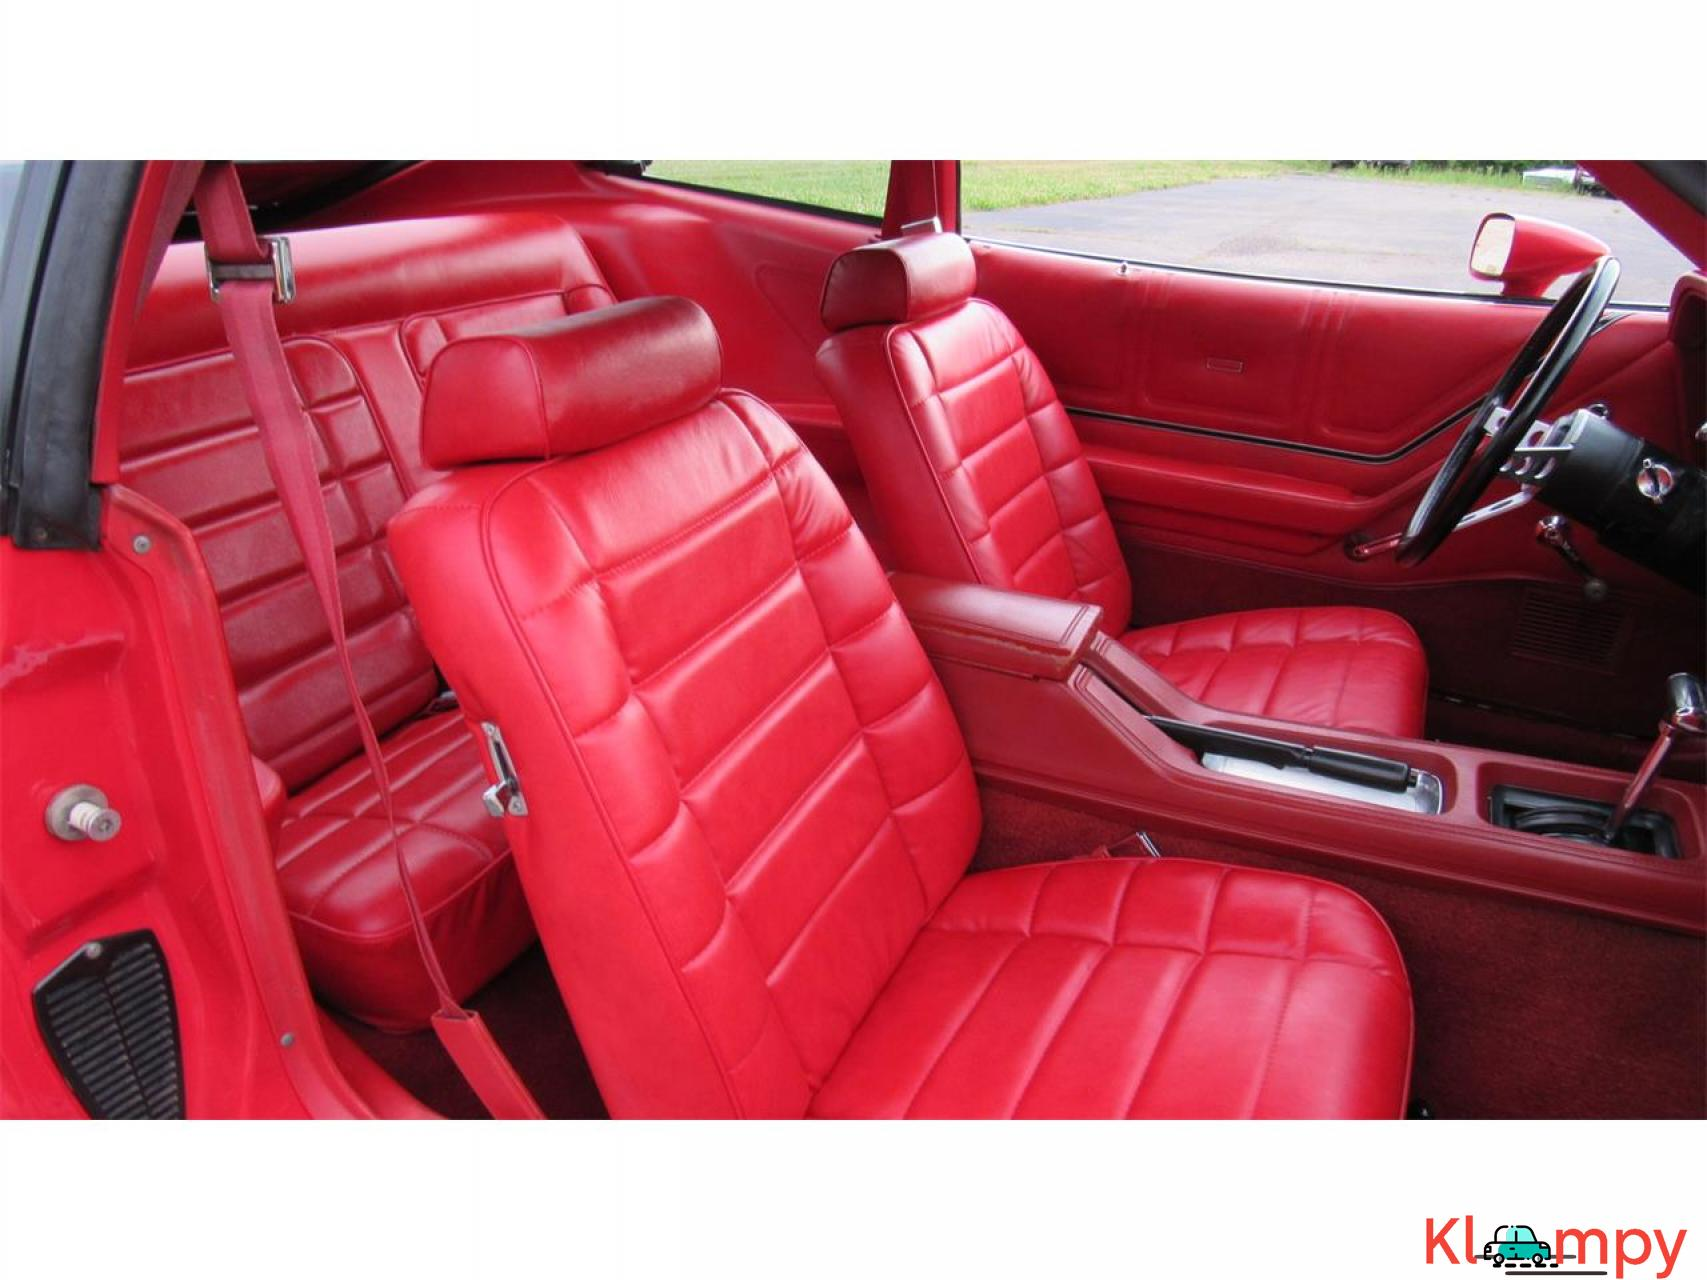 1978 Ford Mustang 302ci V8 Red - 11/17